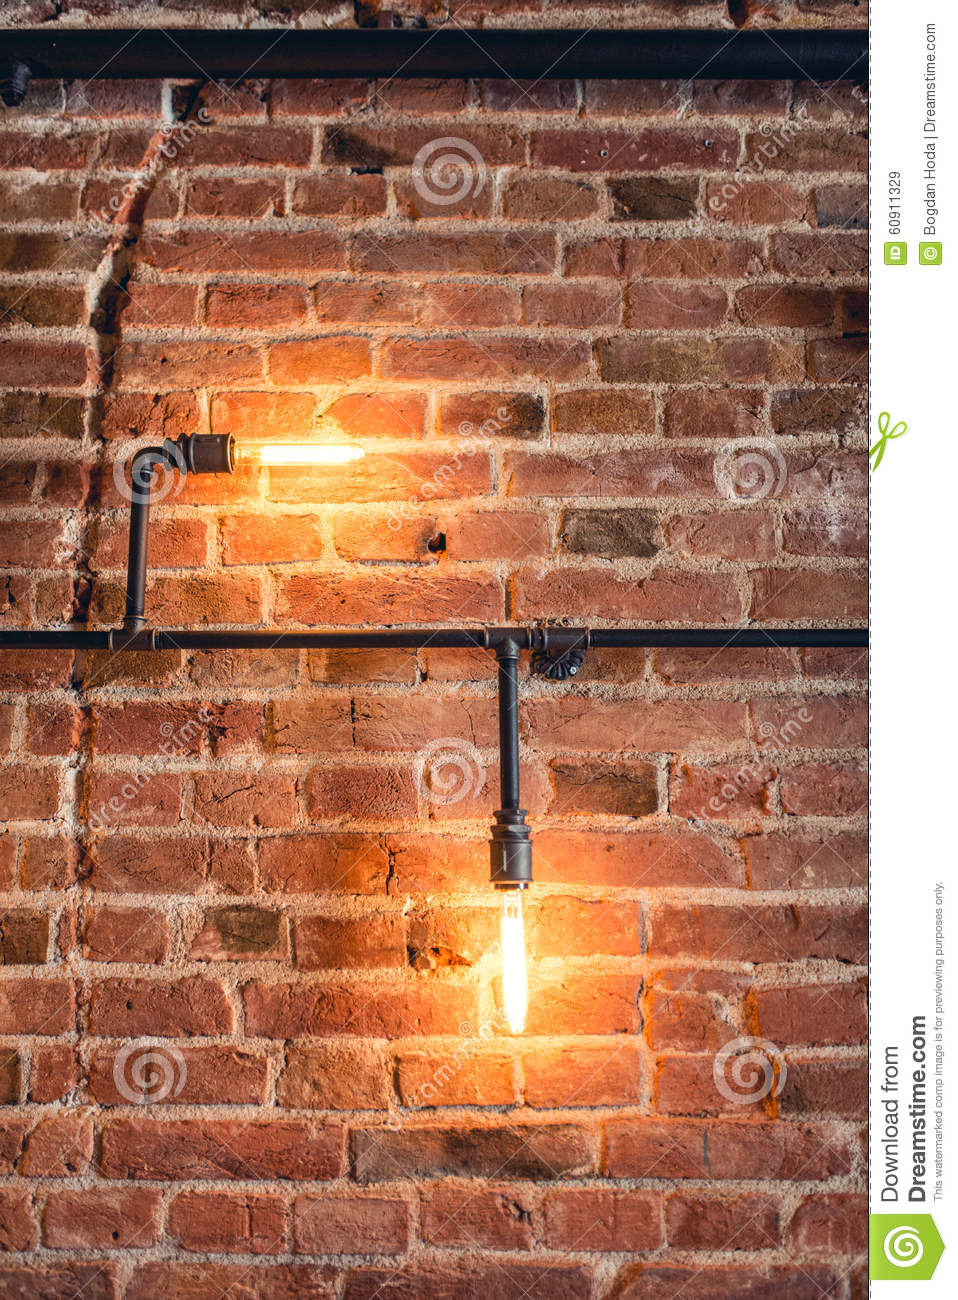 Decoration Walls With Lamps, Pipes And Bricks. Old And Vintage Looking Wall, Interior Design ...